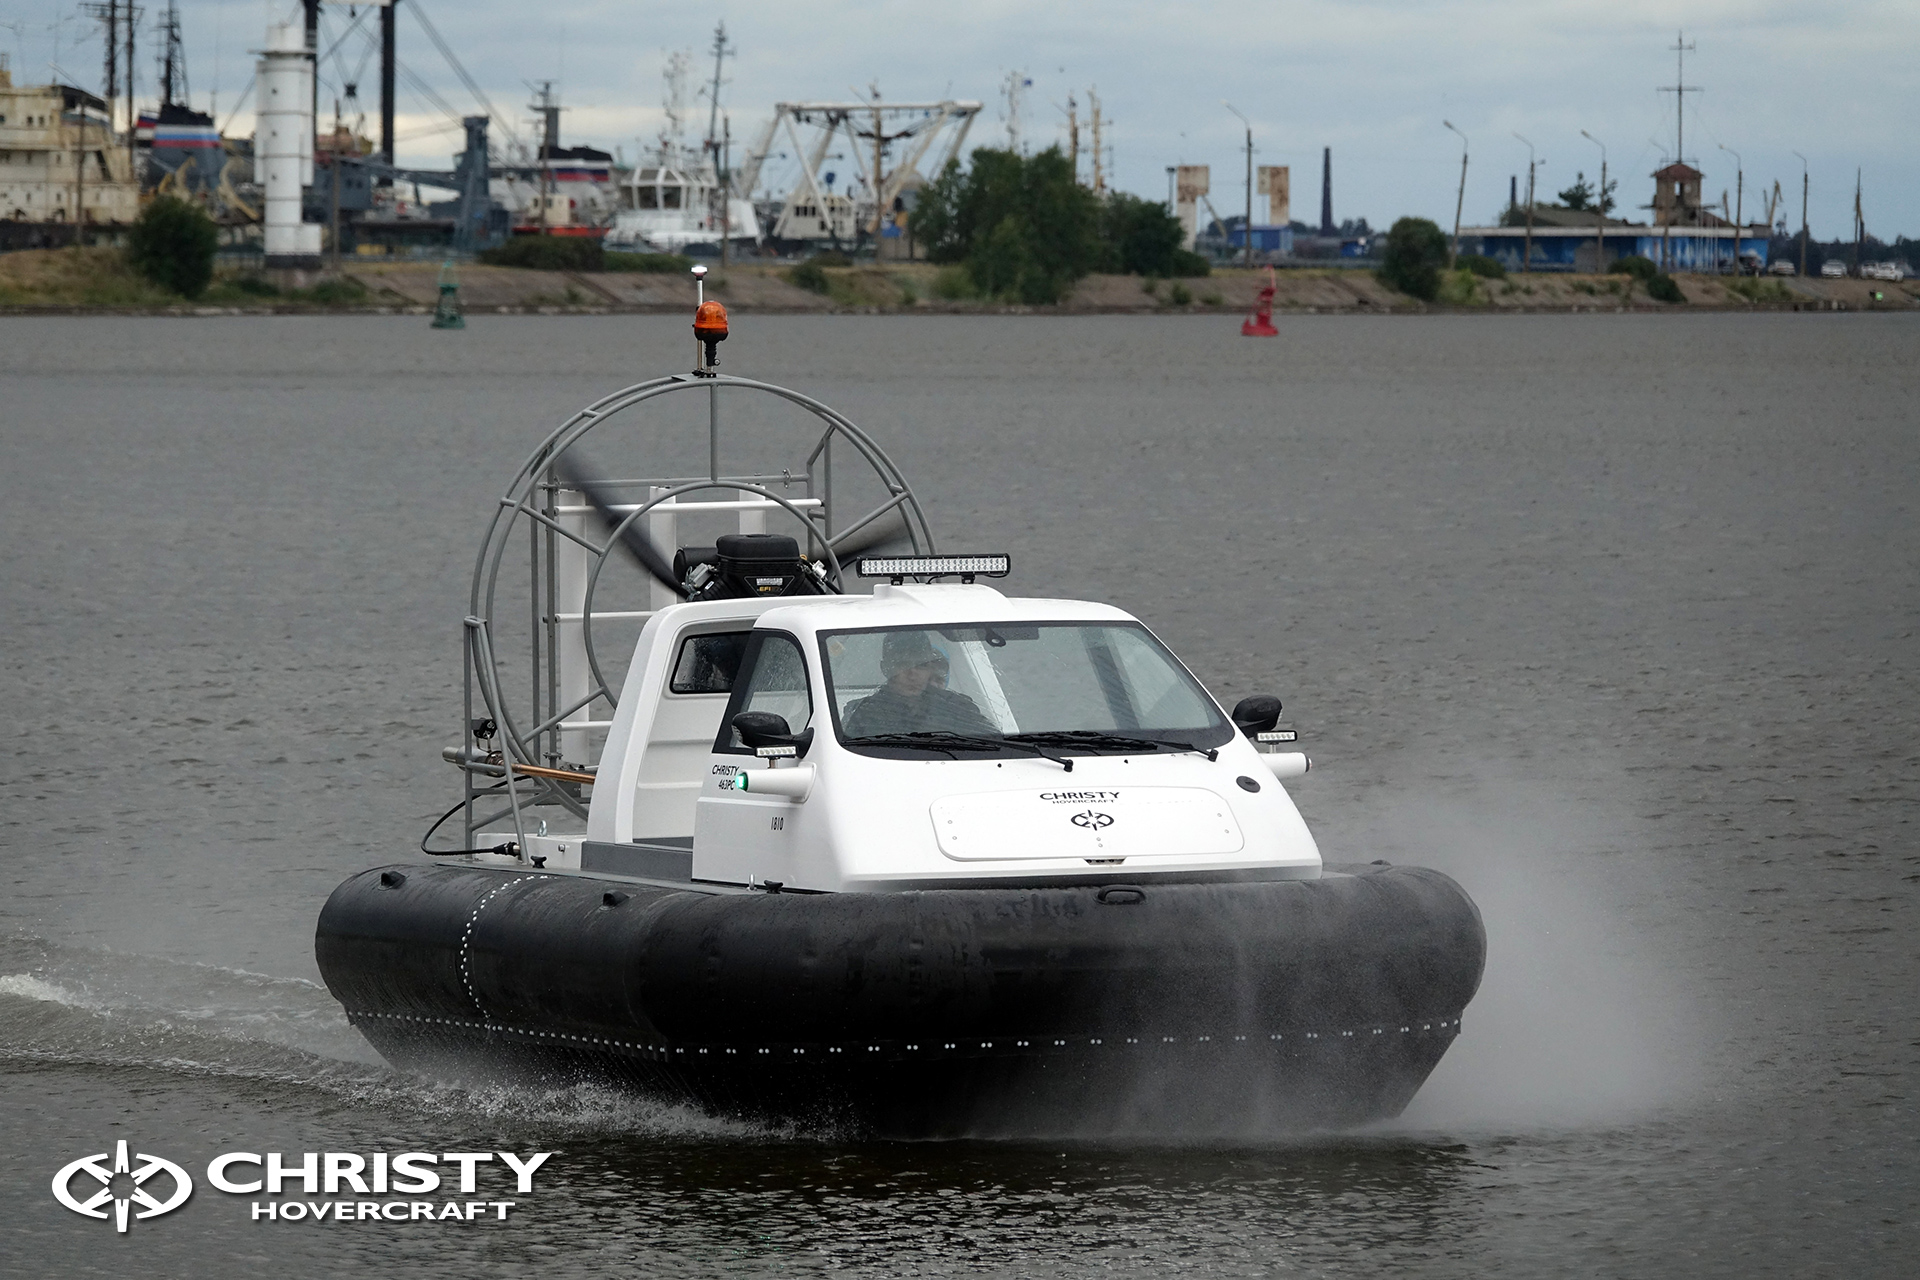 Hovercraft Christy 463 PC in Storm 290618 23.jpg | фото №21